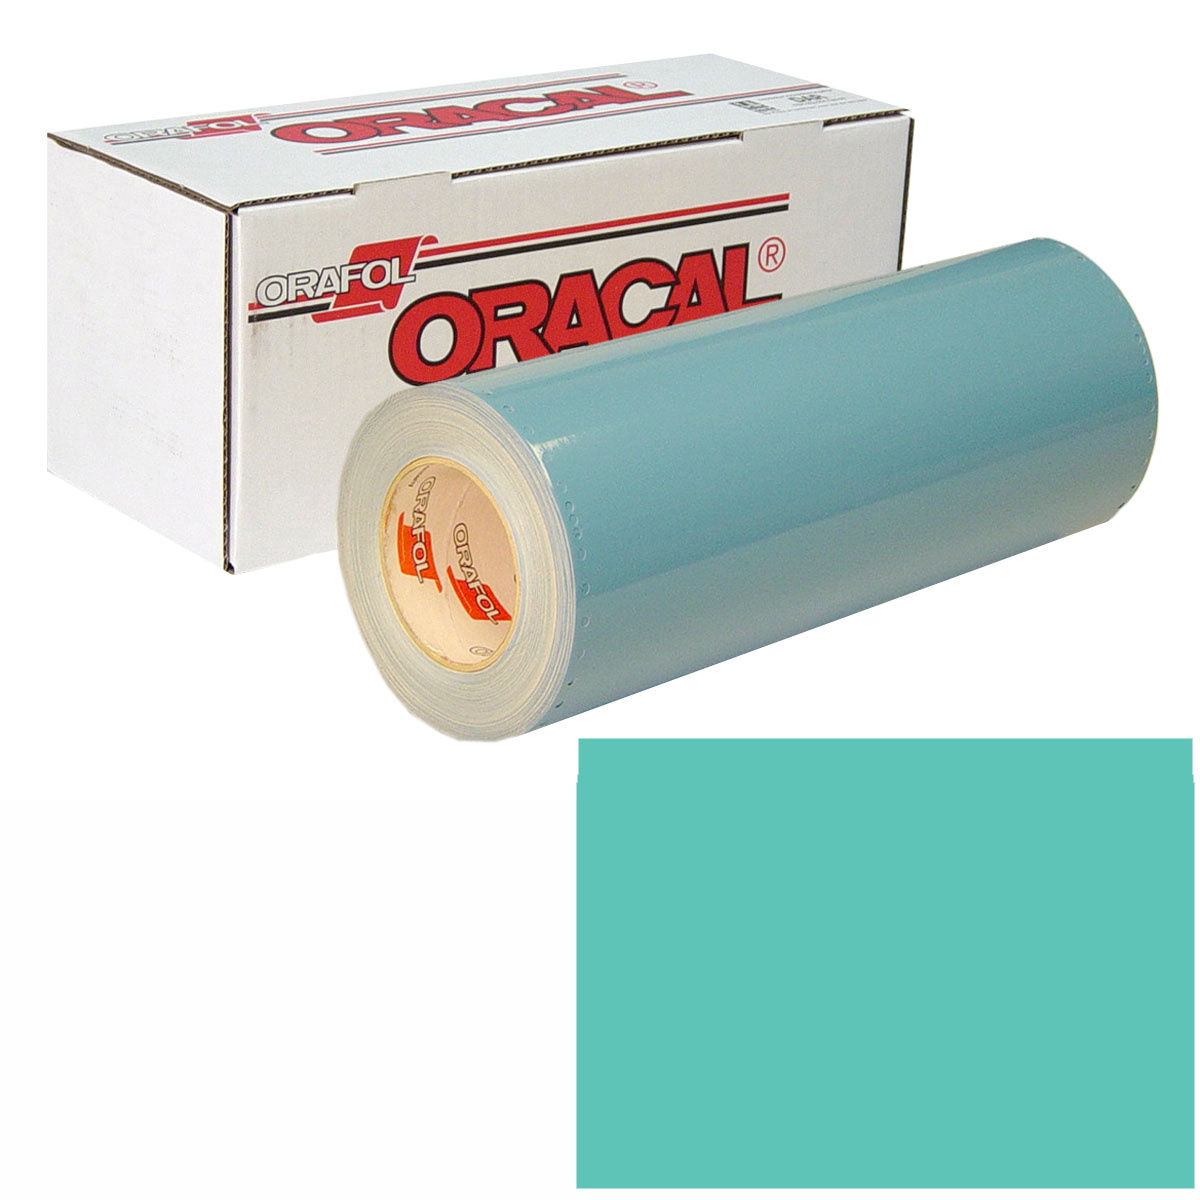 ORACAL 751 15In X 50Yd 055 Mint